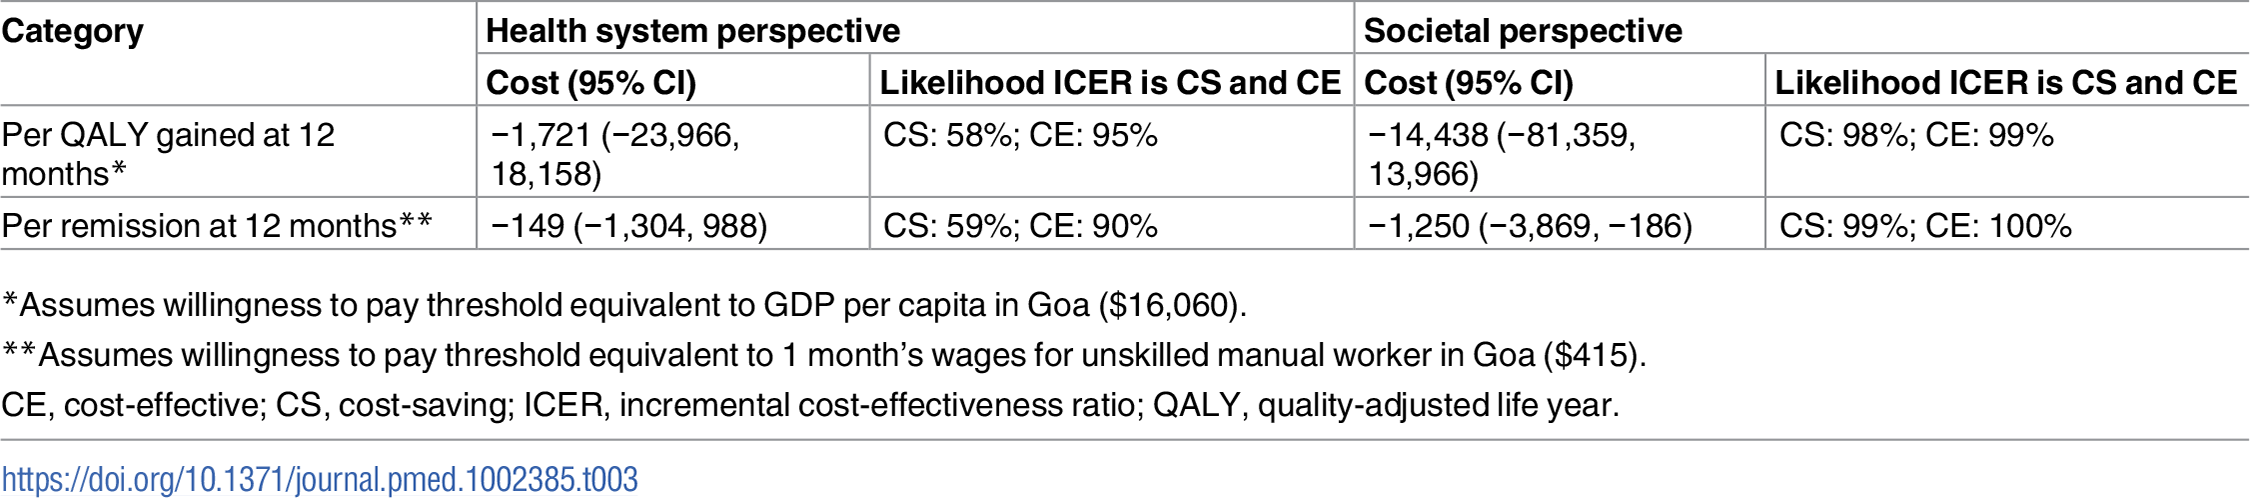 Cost-effectiveness analyses from health system and societal perspectives (costs in 2015 international dollars).